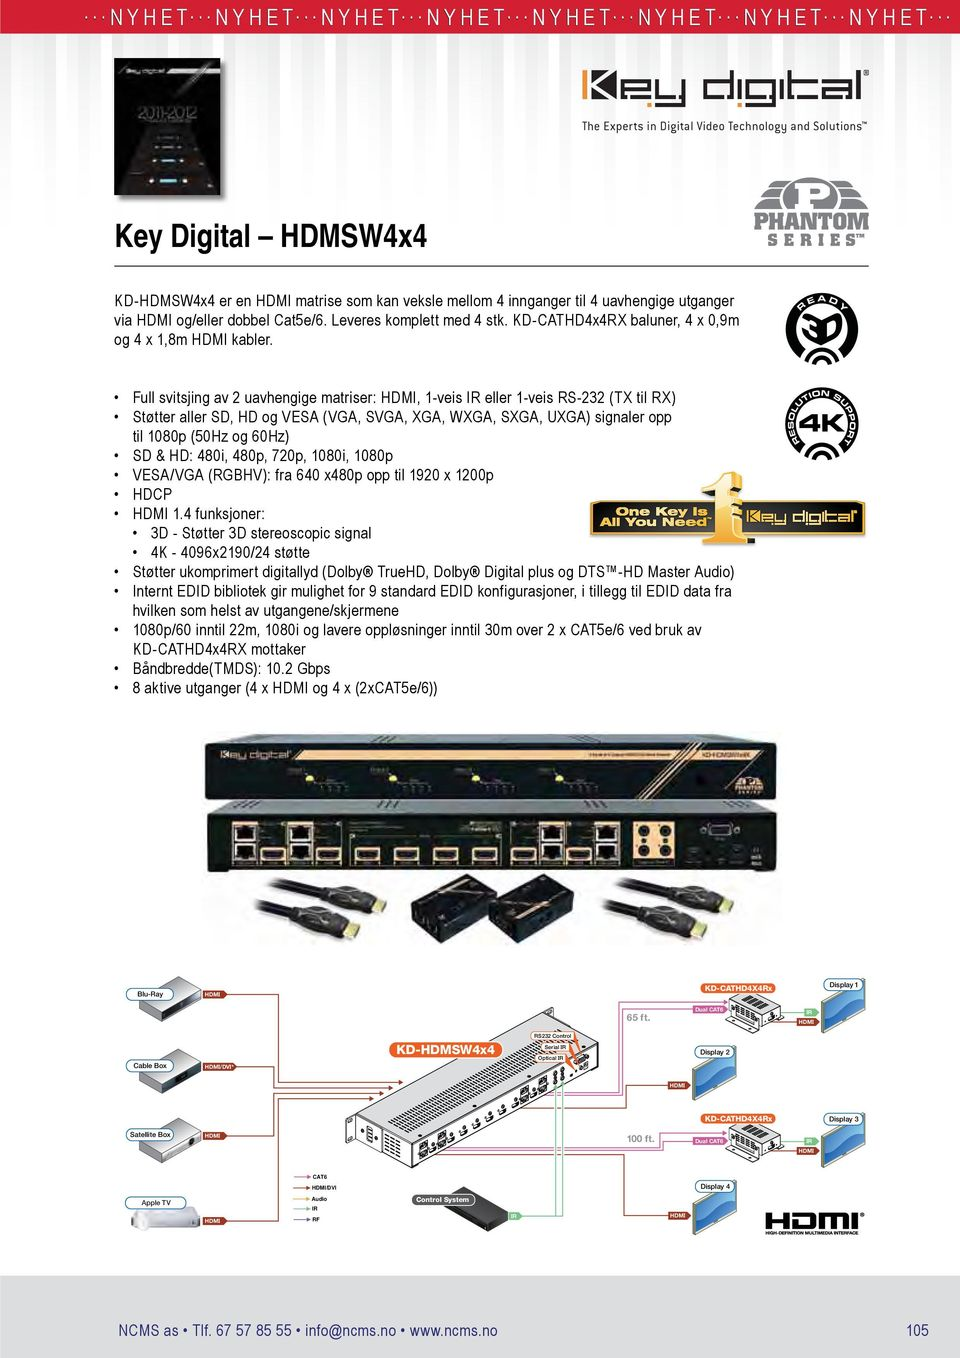 /DVI Matrix Switcher capable of switching up to 4 /DVI Video Sources/Inputs to 4 independent Zones/Outputs via /DVI and CAT5e/6 with included (4) KD-CATHD4X4Rx Baluns Full svitsjing av 2 uavhengige